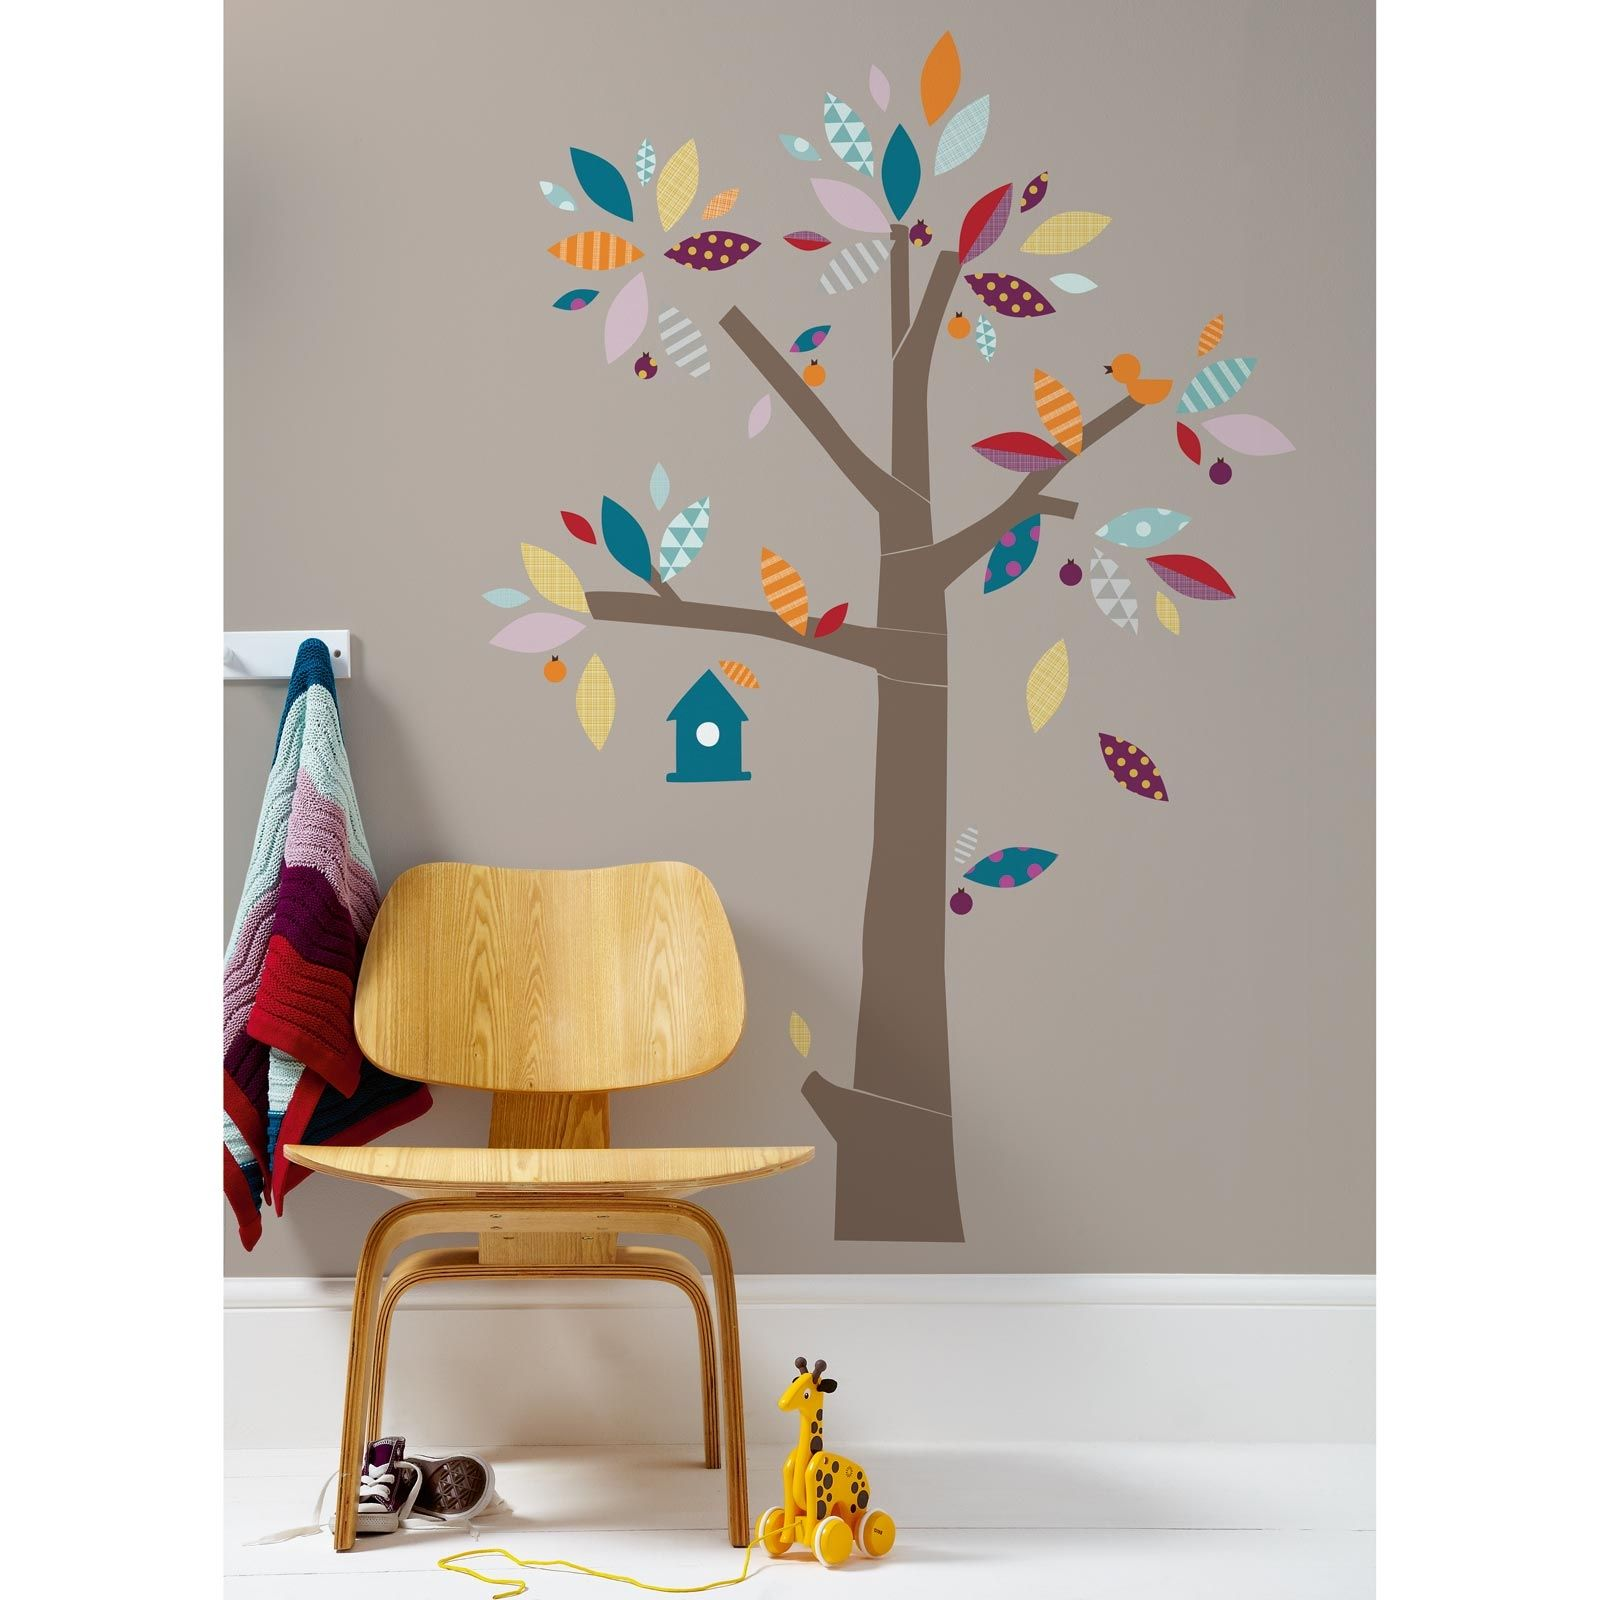 Sticker Mural Arbre Patternology Mamas And Papas Stickers Nature